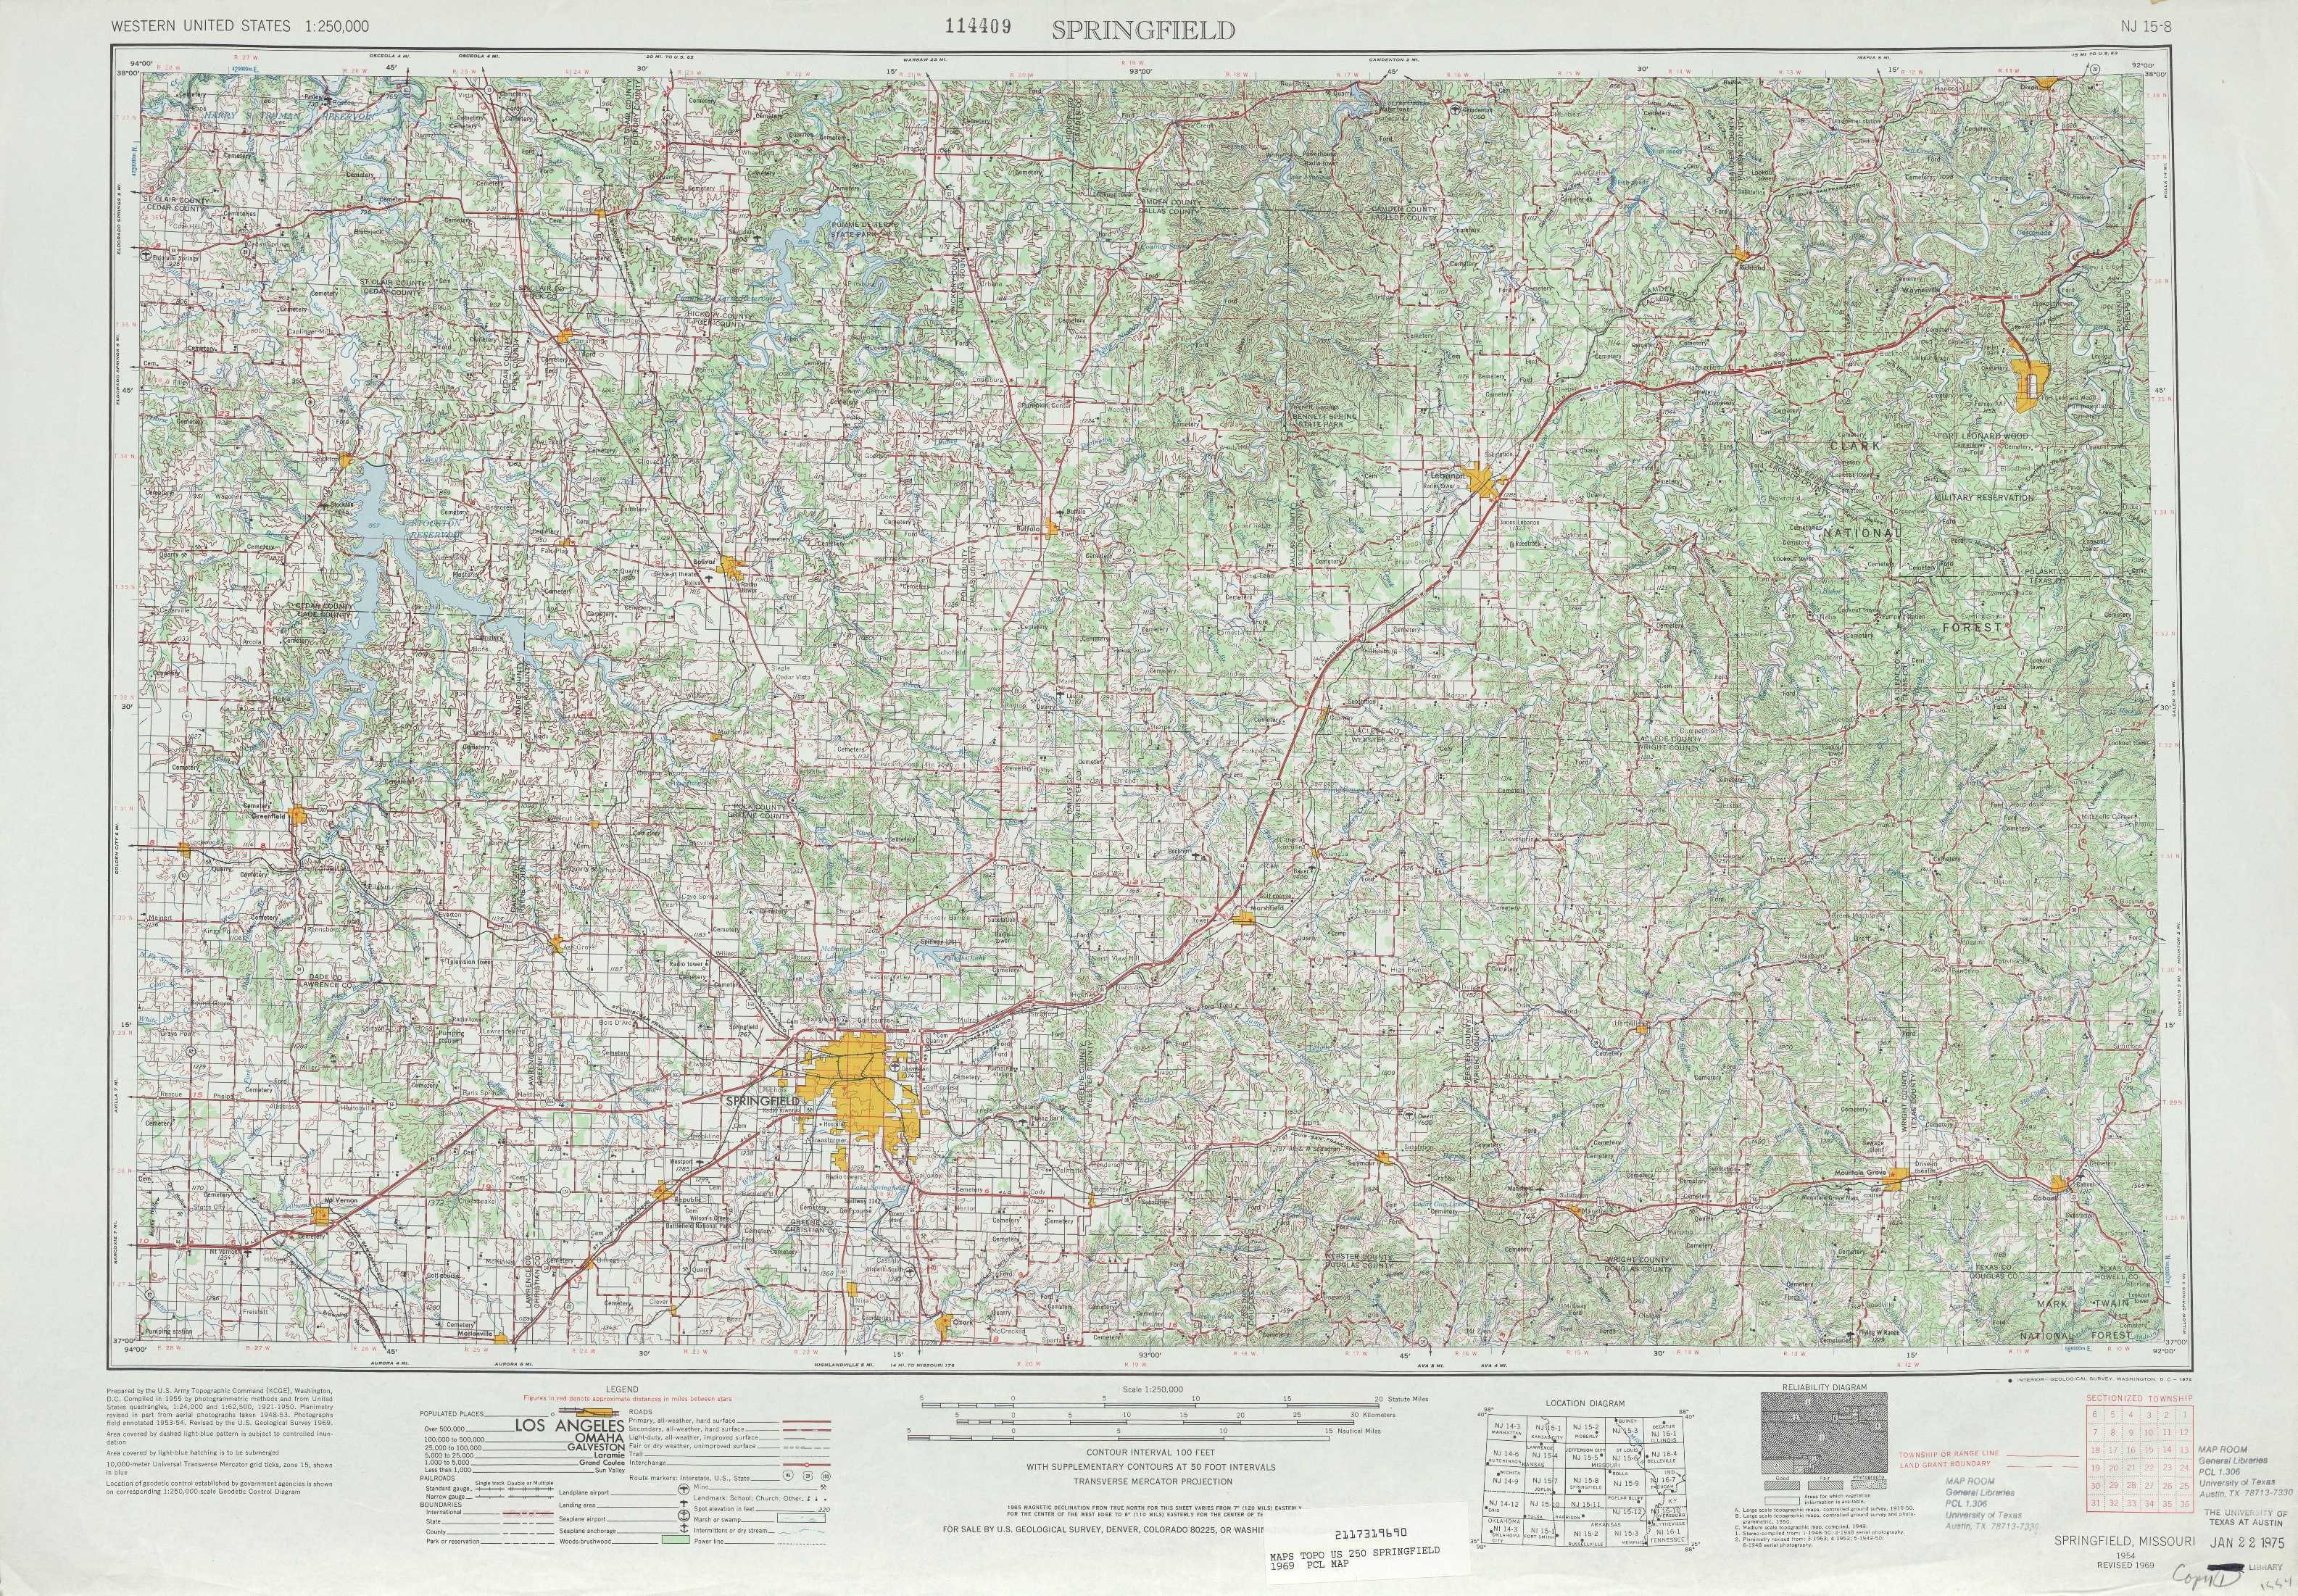 Springfield Topographic Maps MO USGS Topo Quad A At - Springfield mo map